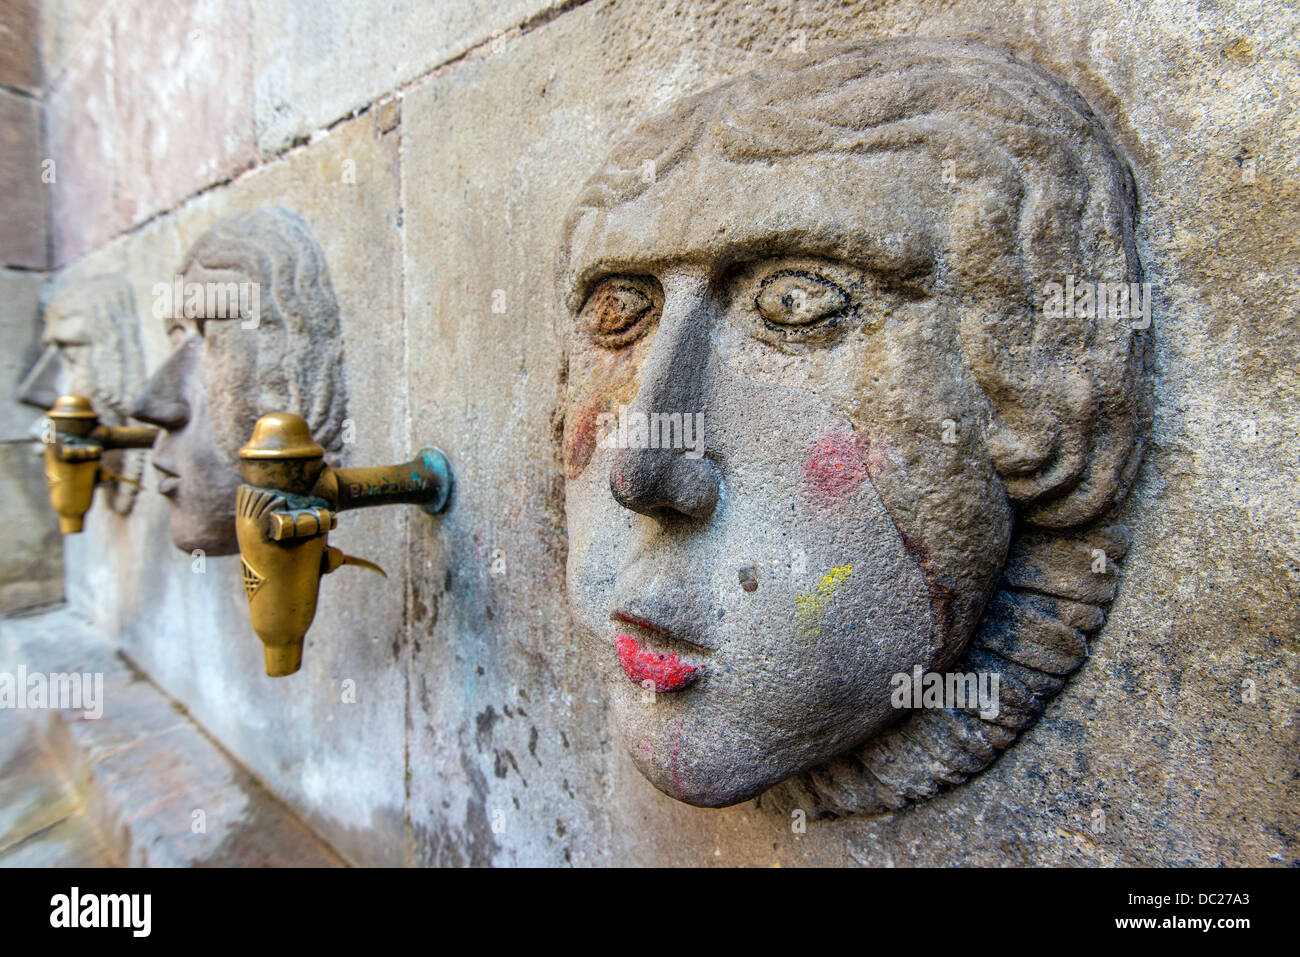 Medieval water fountain in Plaza Sant Just, Barcelona, Catalonia, Spain - Stock Image